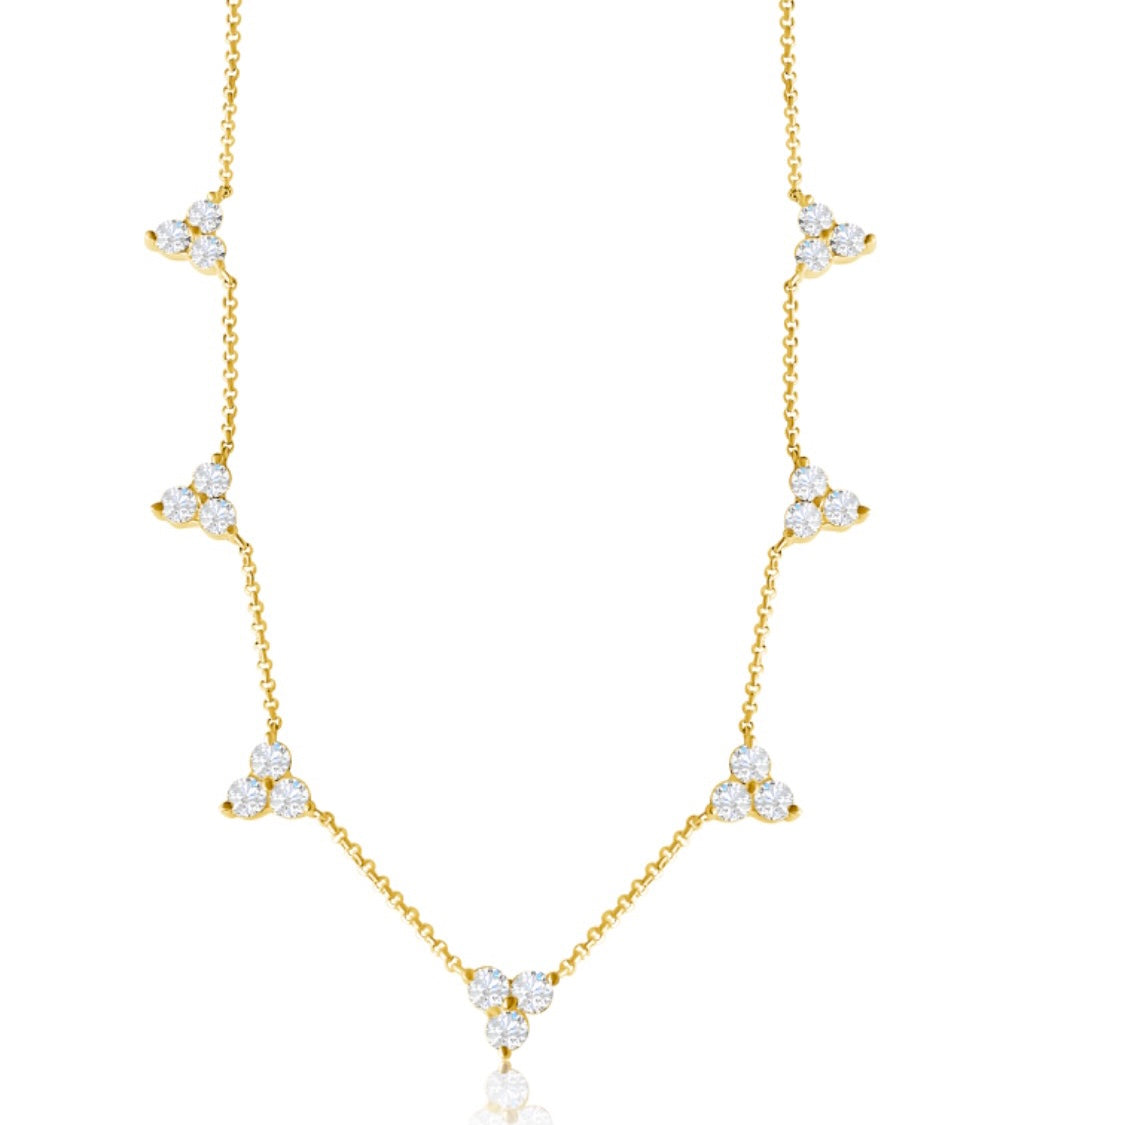 14KT Gold Diamond Cindy Necklace, NEW